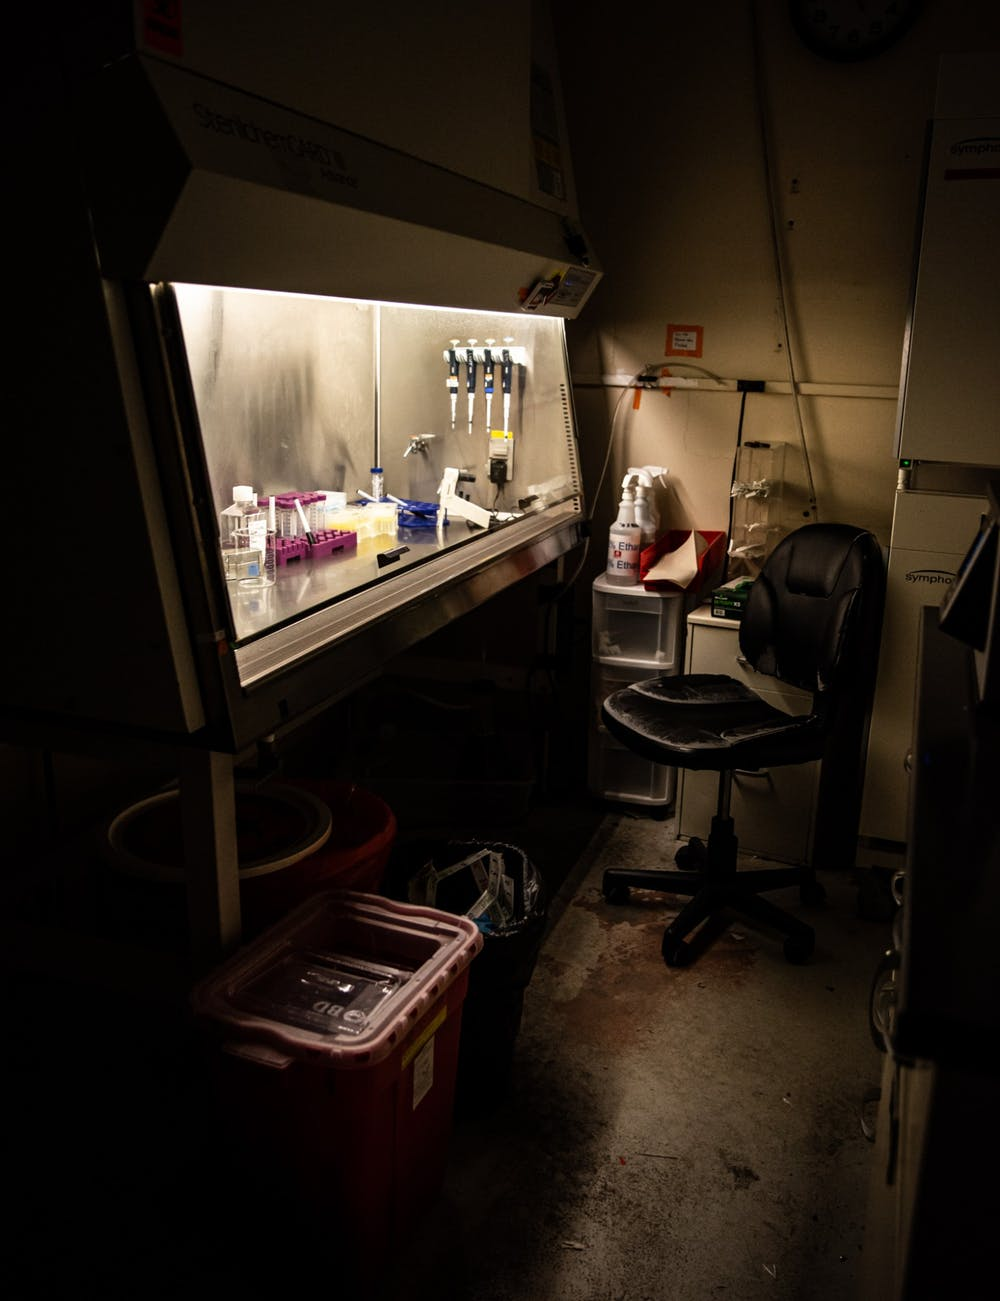 <p>Photos taken inside a biochemistry research lab on March 15, 2020.</p>